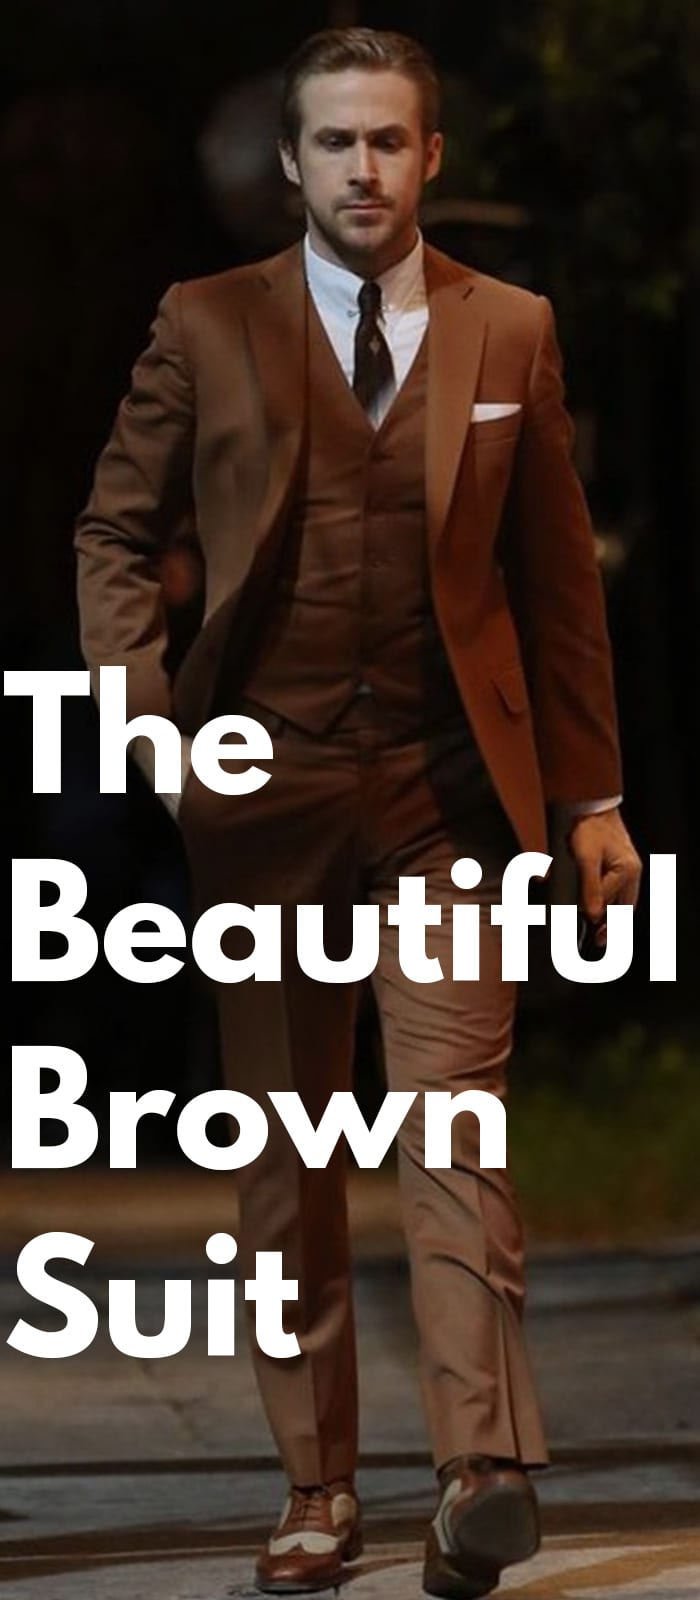 The Beautiful Brown Suit